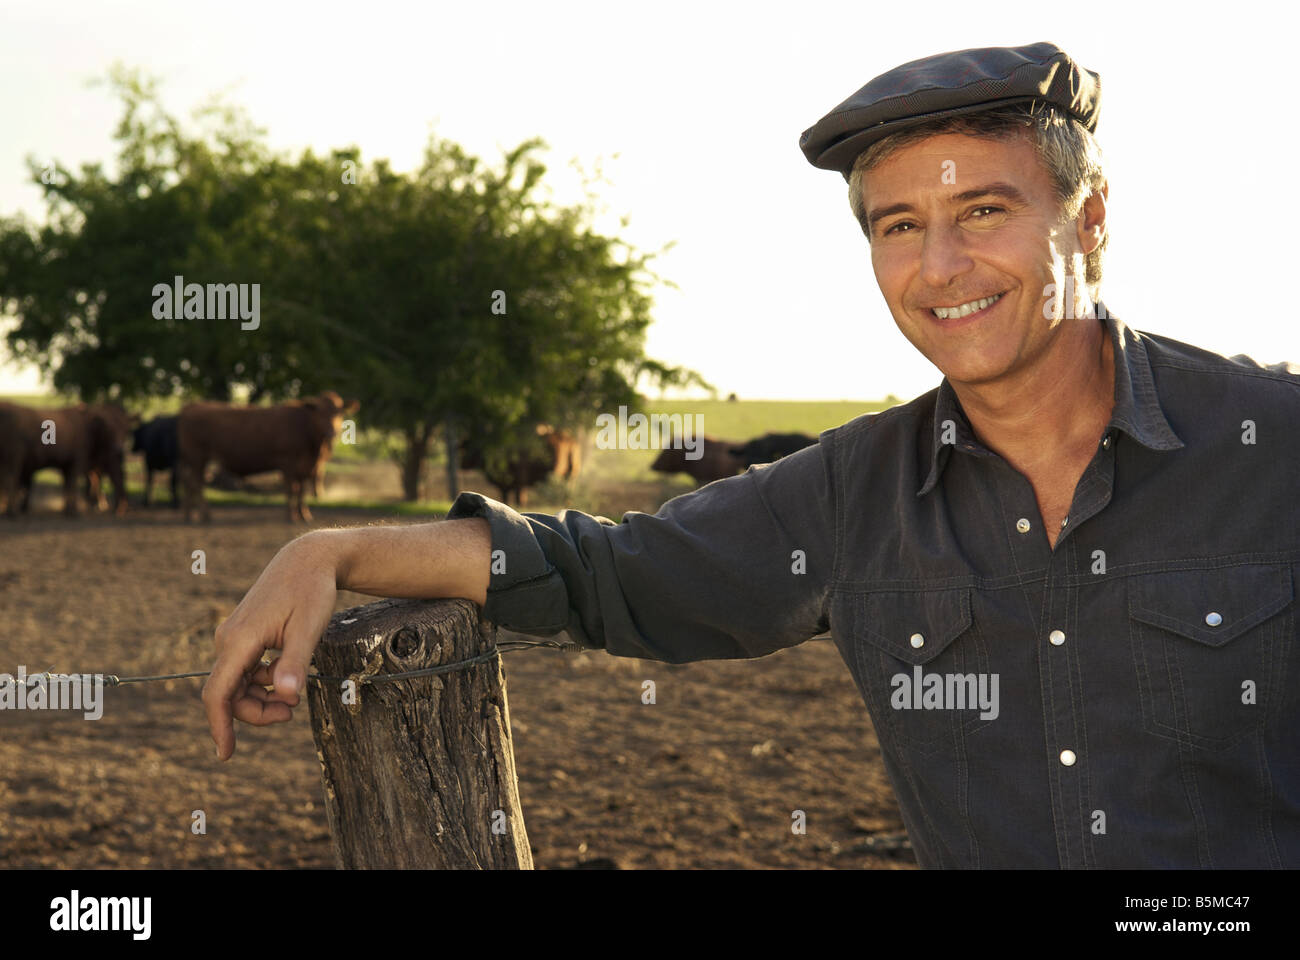 A man on a ranch leaning on a fence post - Stock Image